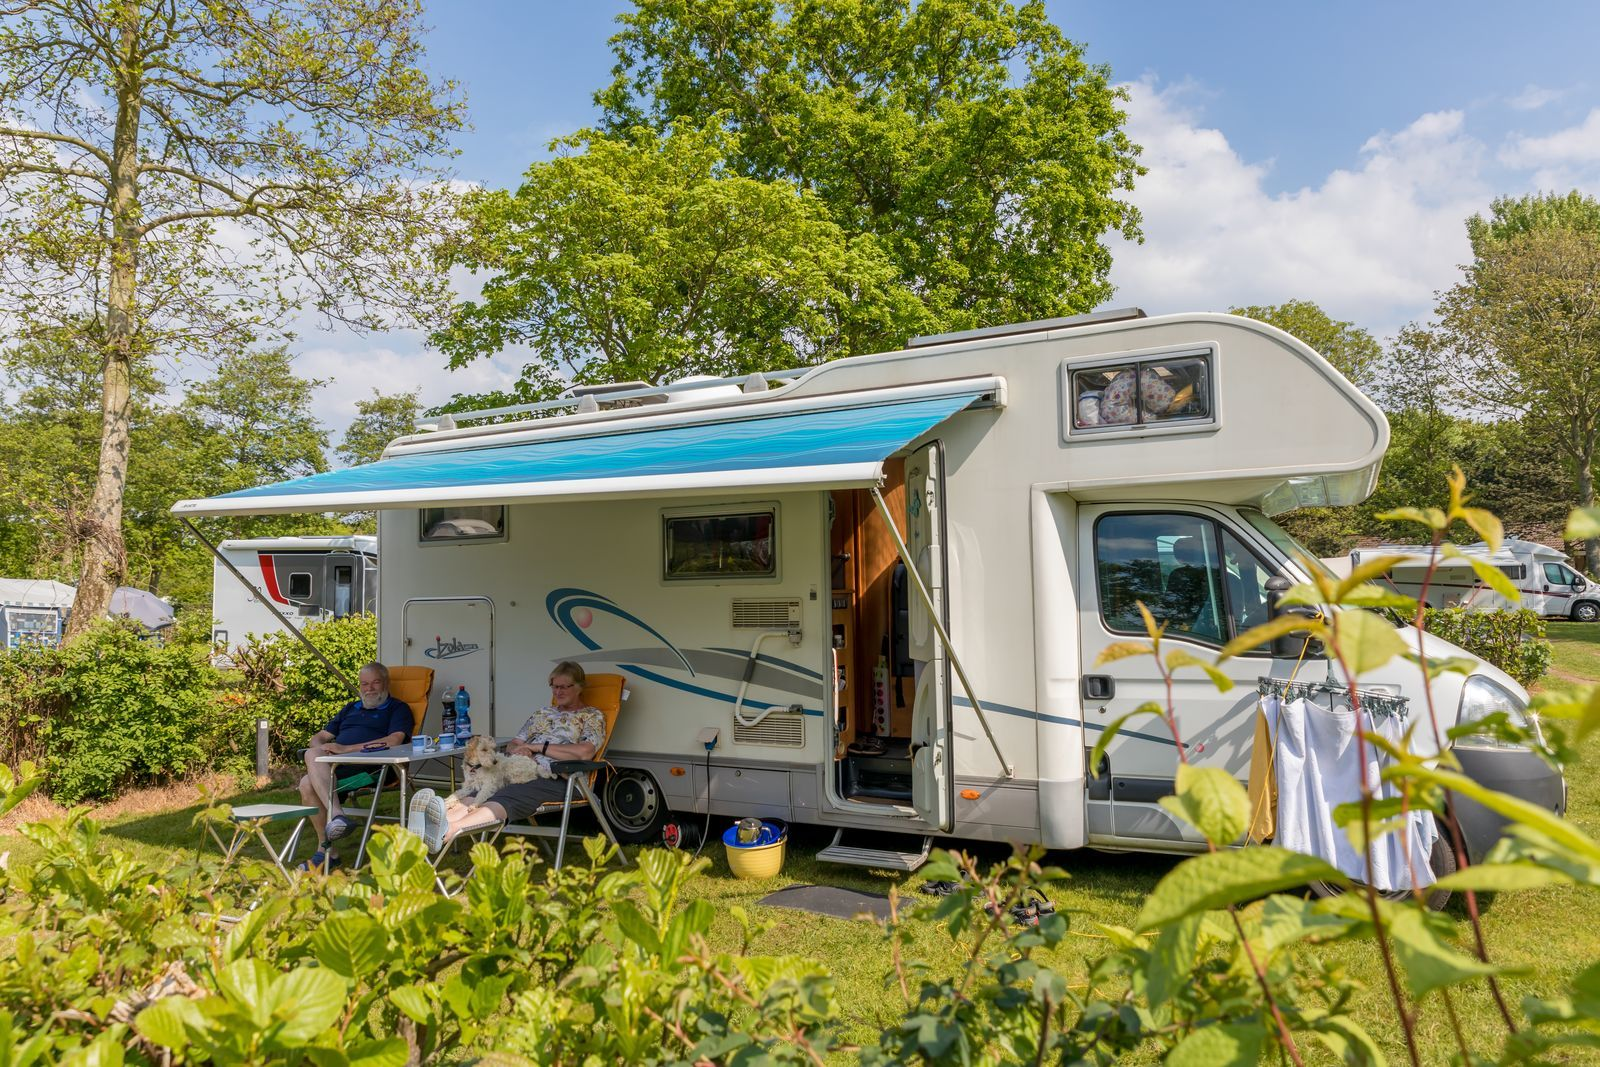 Camperplaats long stay